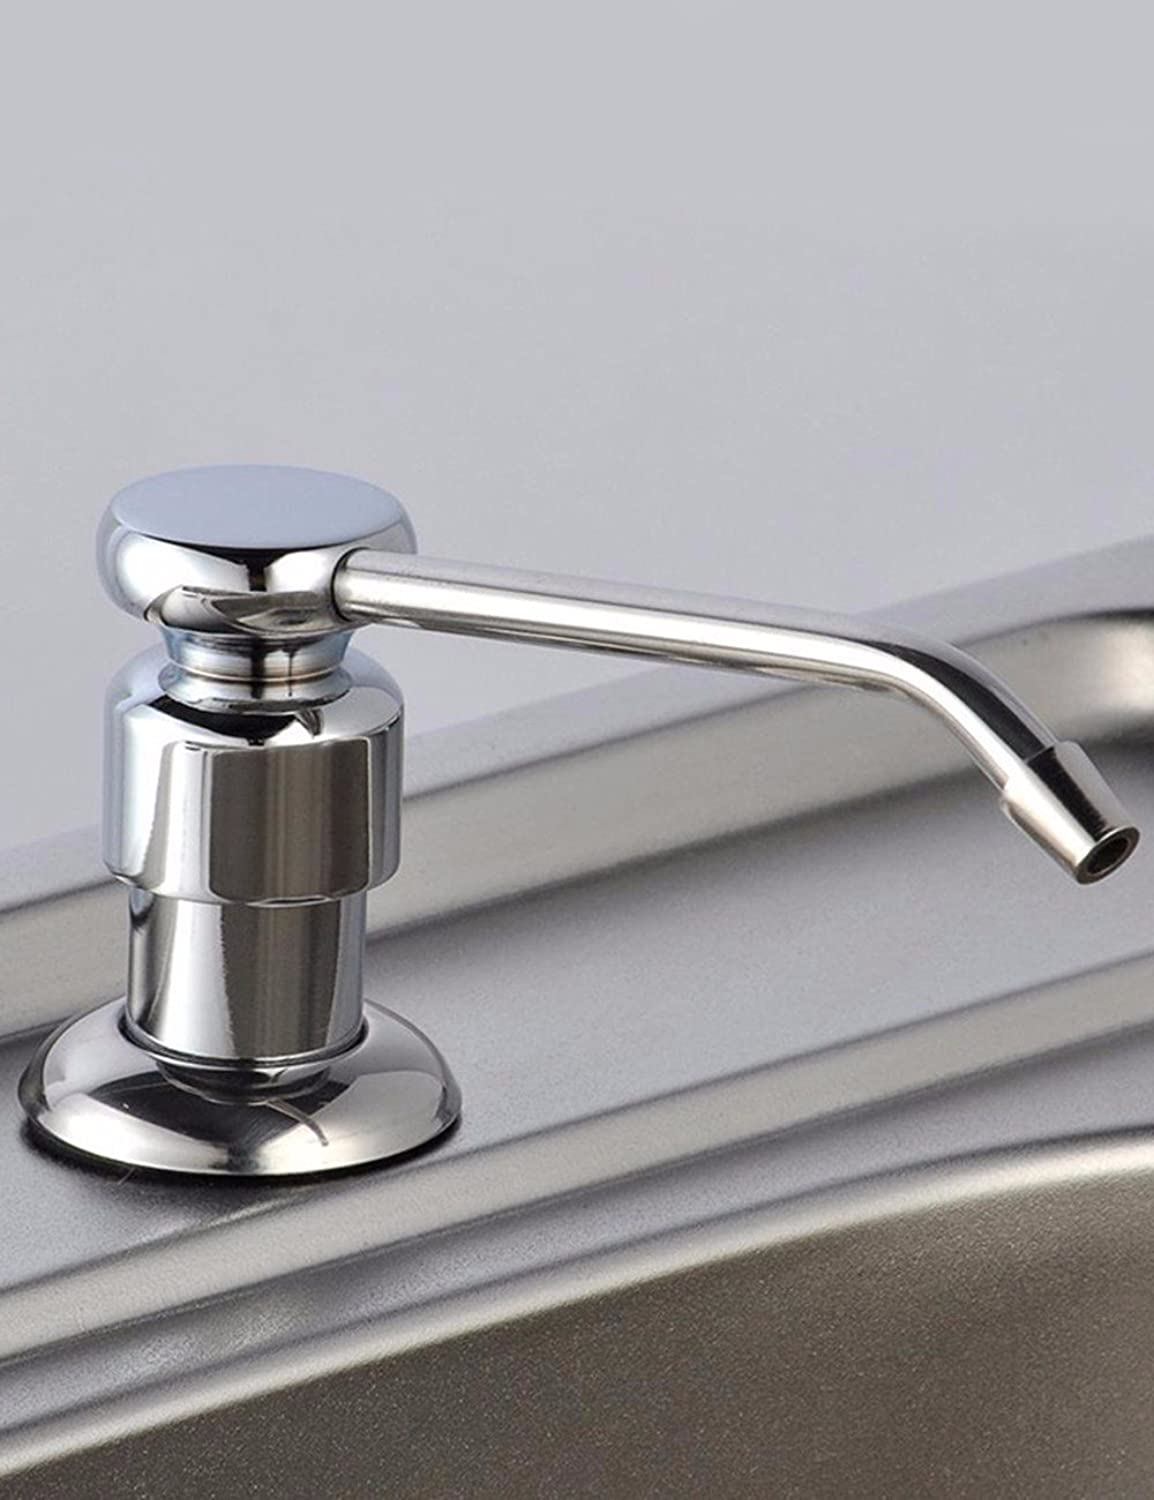 Commercial Single Lever Pull Down Kitchen Sink Faucet Brass Constructed Polished Manual Soap Dispenser Kitchen Manual Plumbing Hardware Bathroom Kitchen Faucet